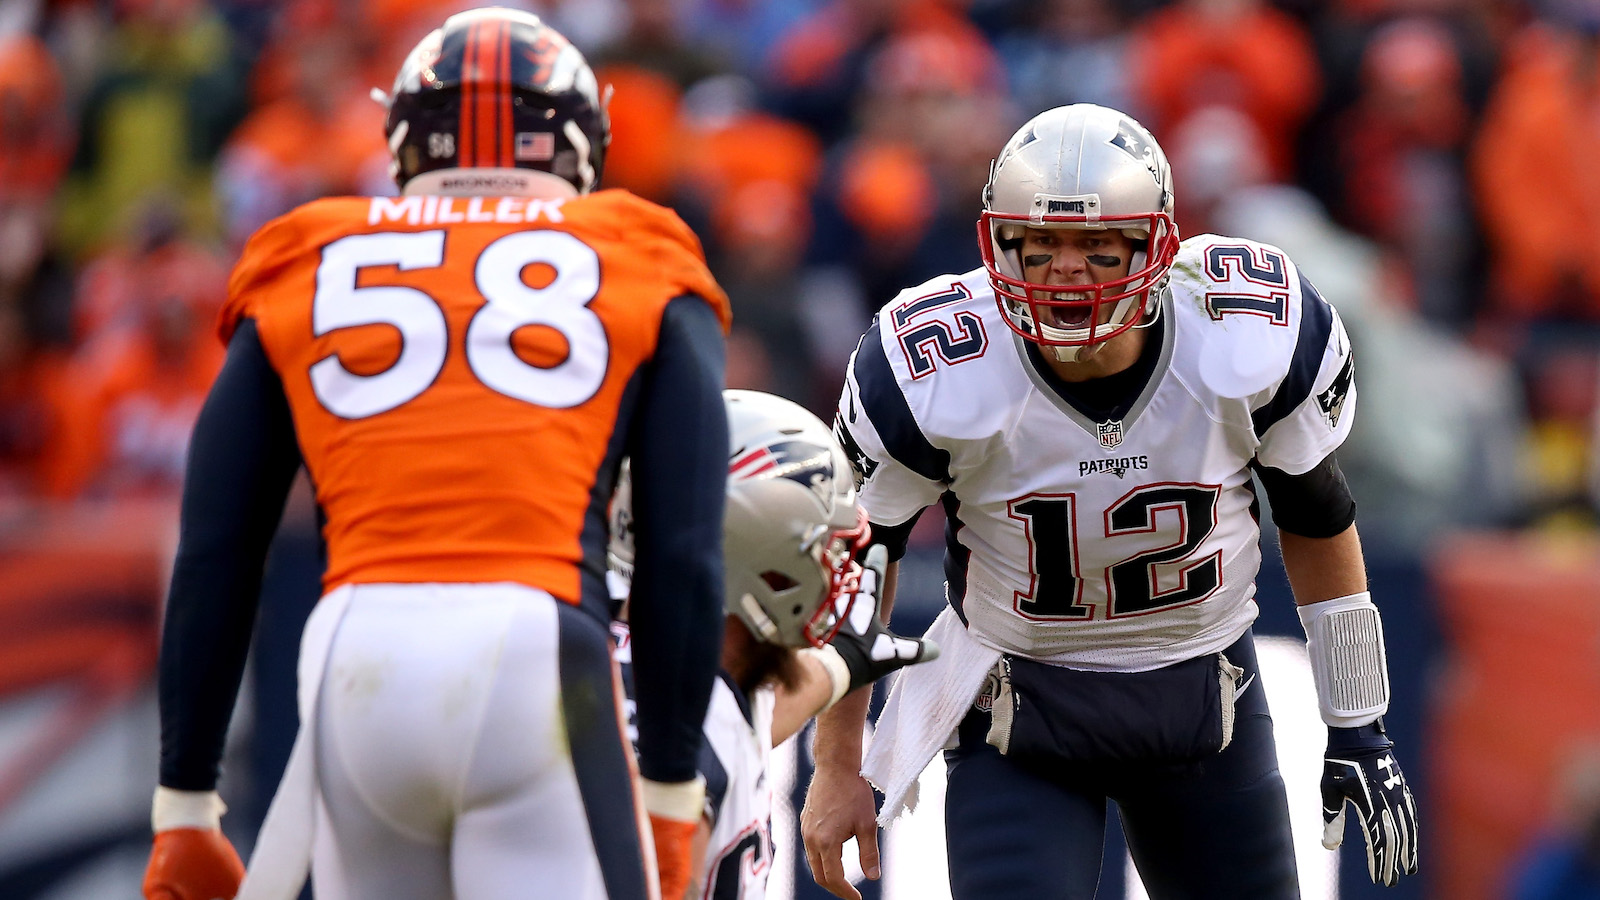 New England Patriots Vs. Denver Broncos 2016